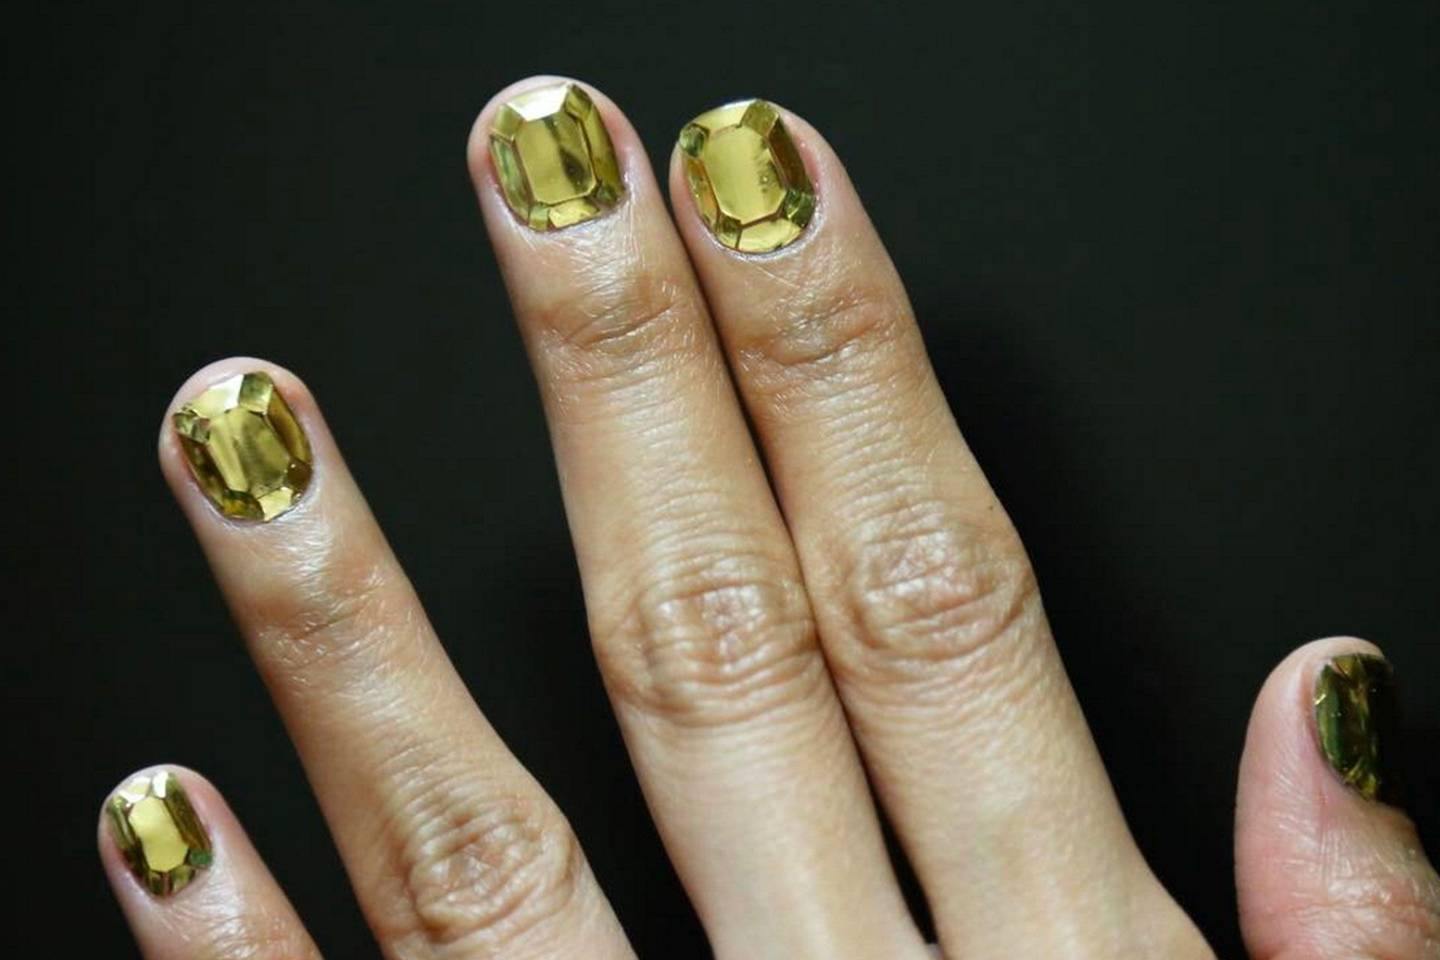 Korean Nail Art - Nail Designs & Pictures from Instagram ...